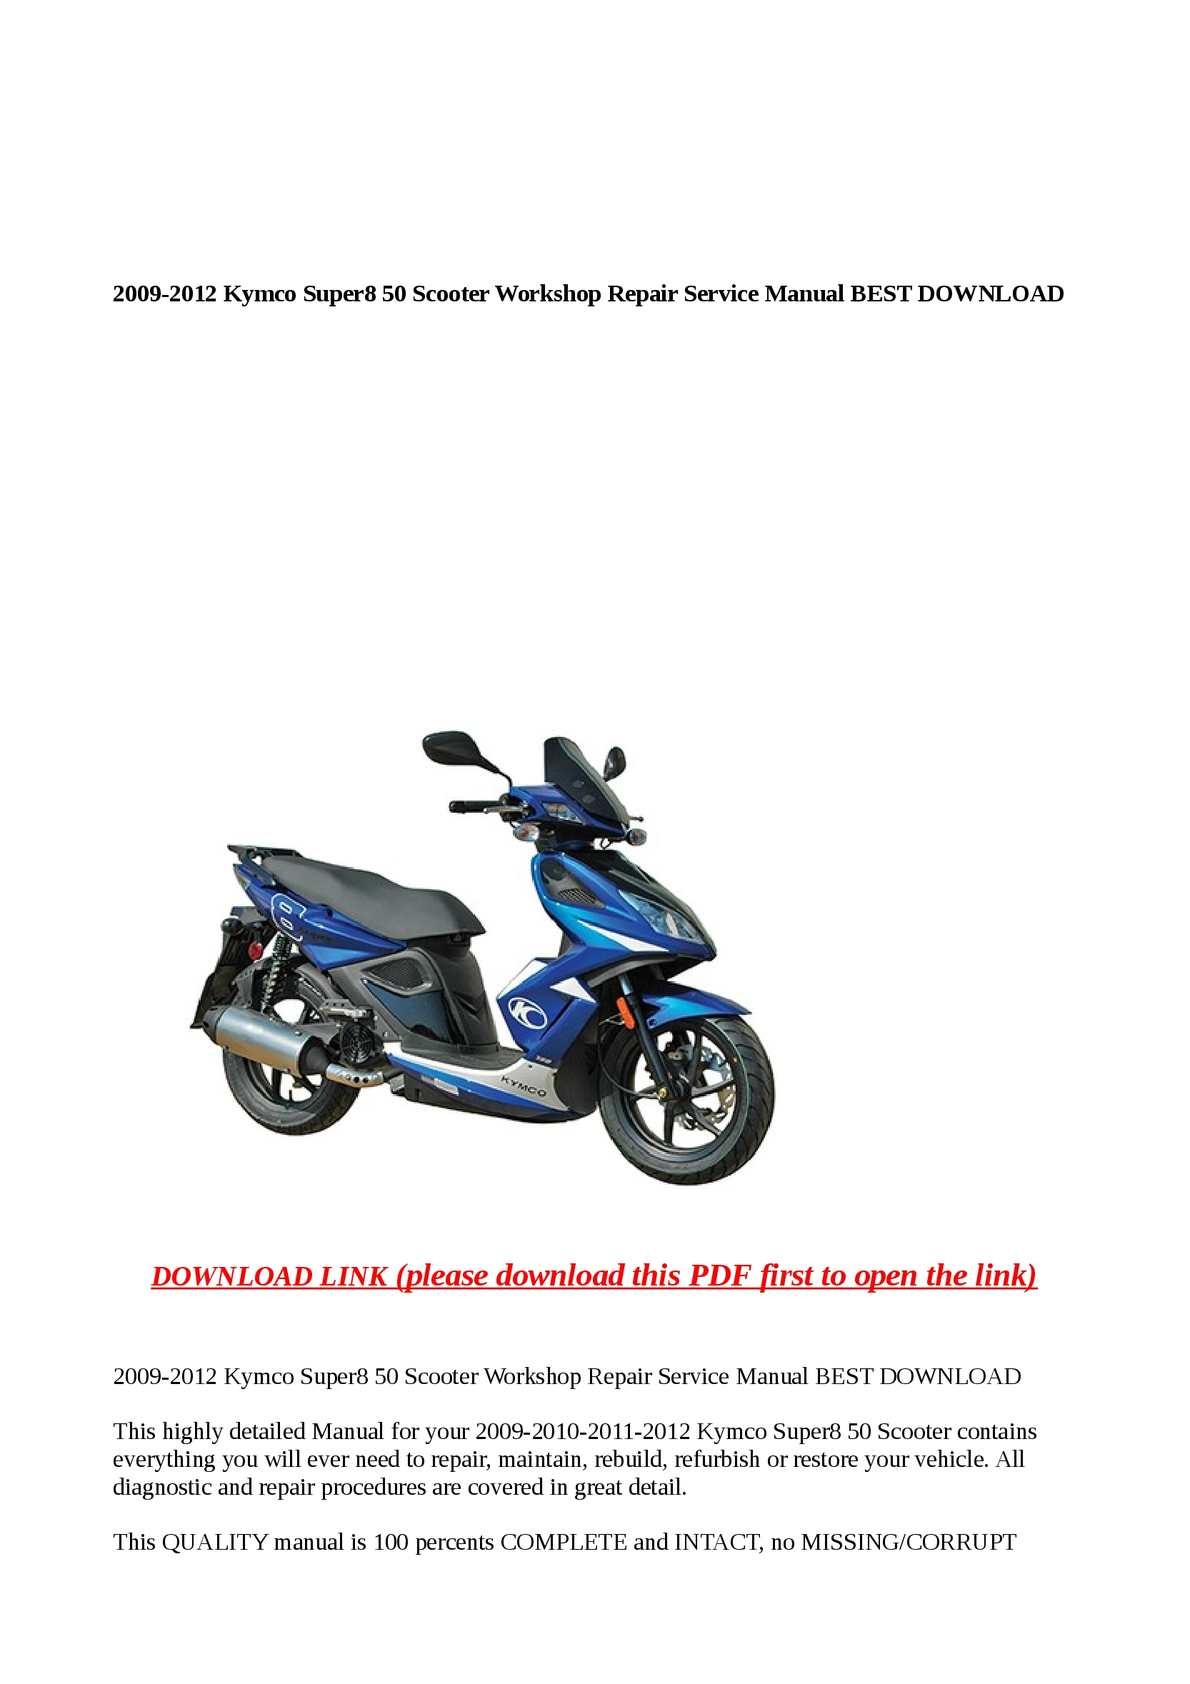 Calaméo - 2009-2012 Kymco Super8 50 Scooter Workshop Repair Service Manual  BEST DOWNLOA